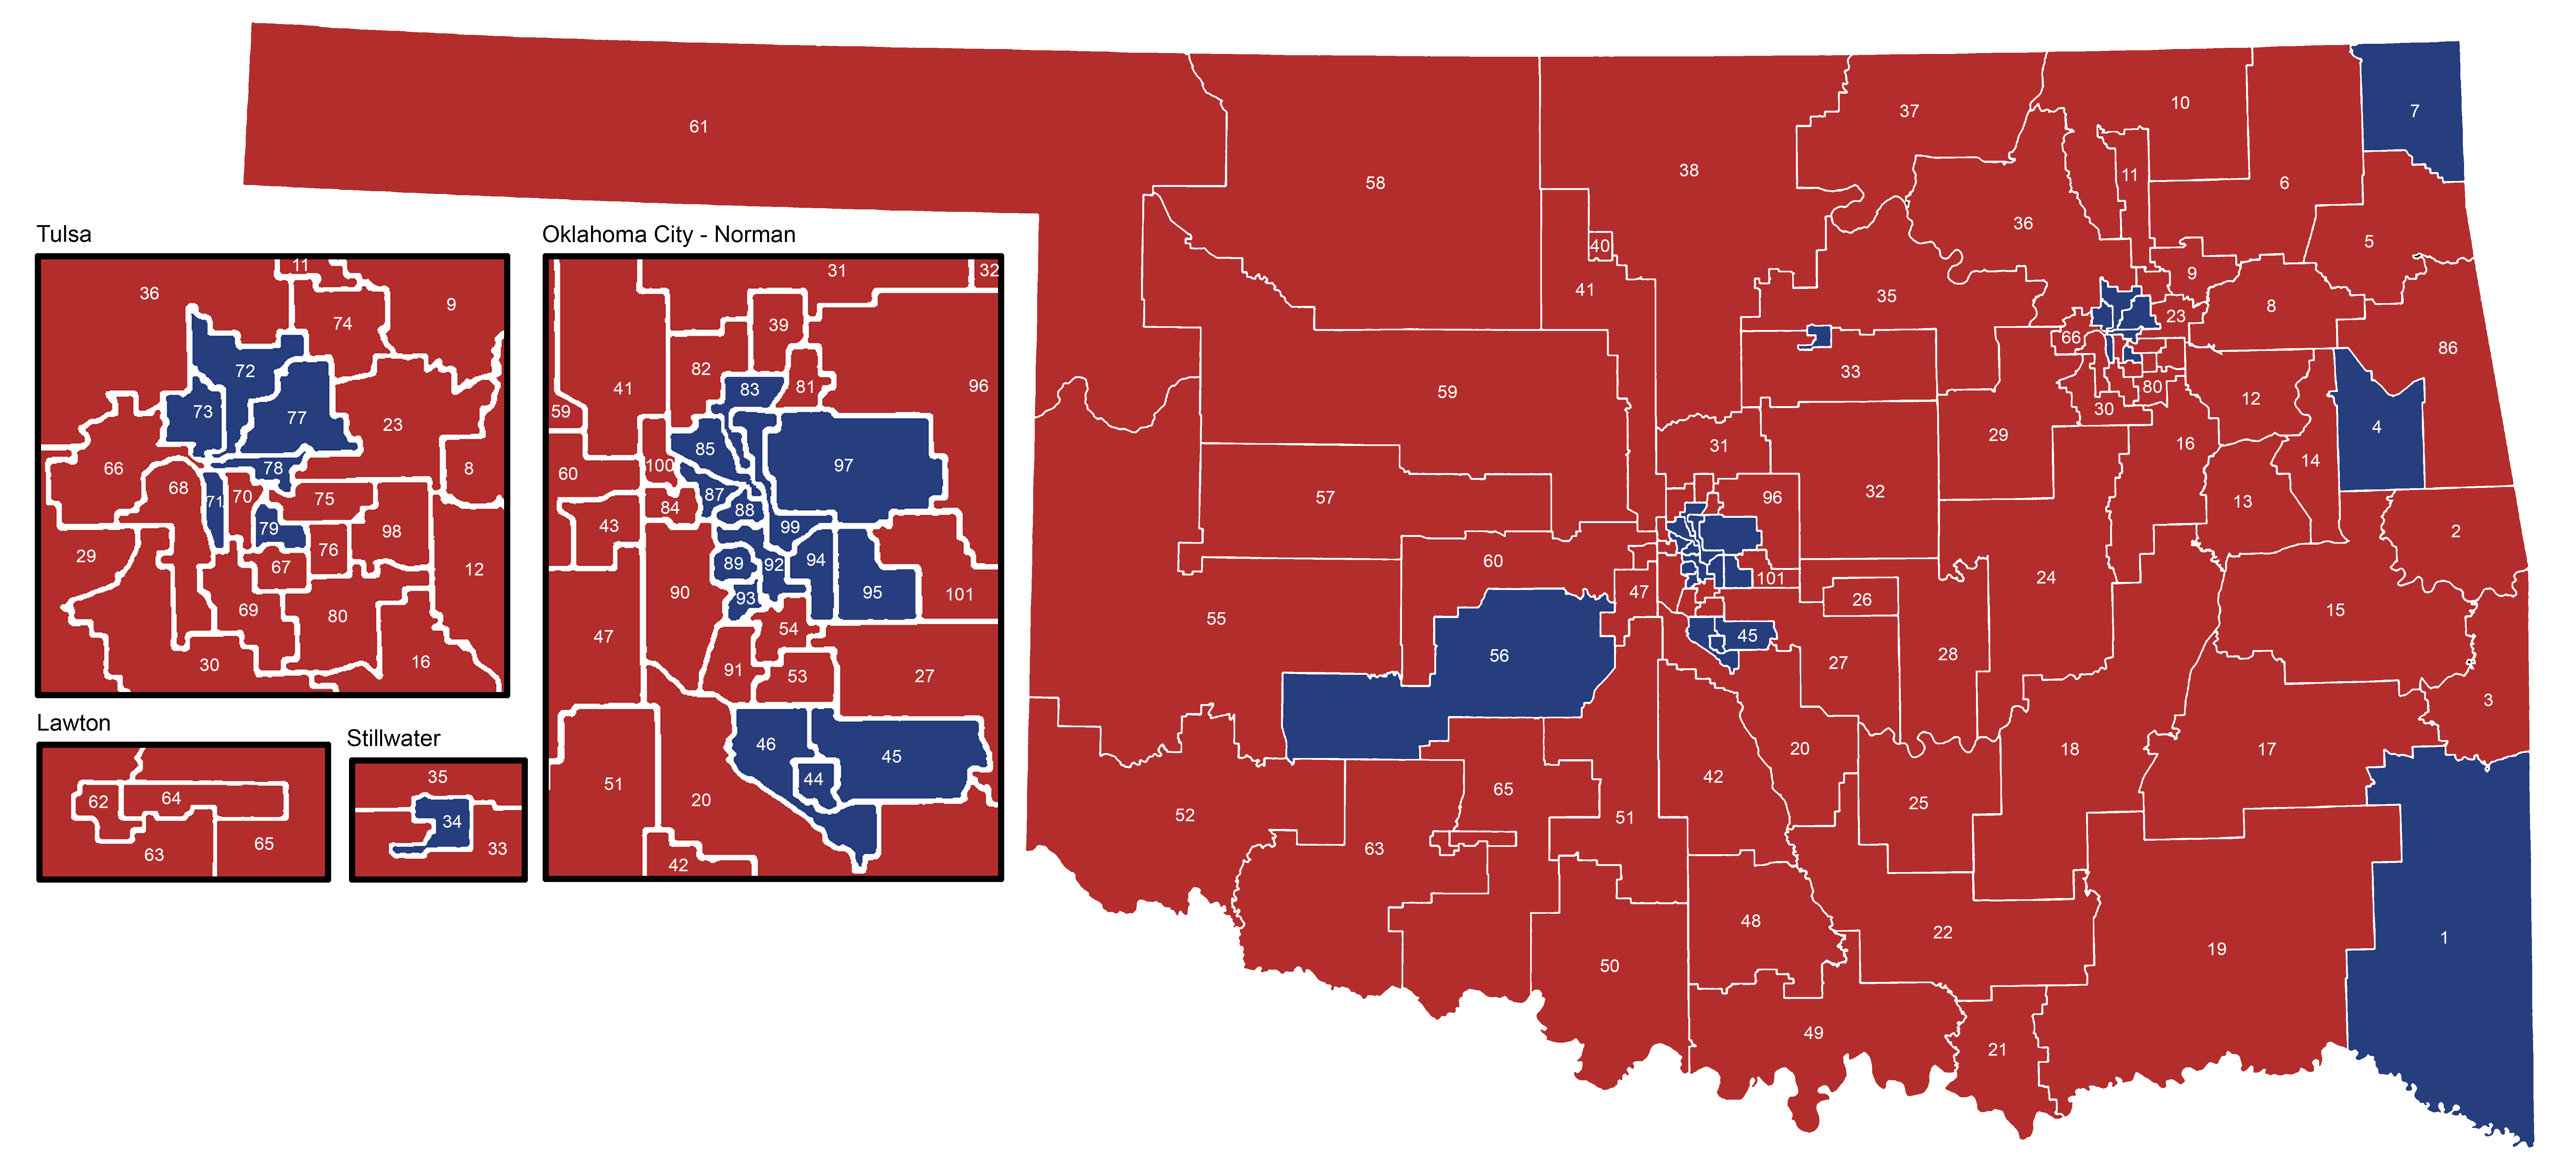 File:Oklahoma House of Representatives map November 2018.png ... on map of claremore oklahoma, map of hopeton oklahoma, map of wapanucka oklahoma, map of mulhall oklahoma, map of okarche oklahoma, map of park hill oklahoma, map of meers oklahoma, map of mccurtain oklahoma, map of tecumseh oklahoma, map of arnett oklahoma, map of nashoba oklahoma, map of kellyville oklahoma, map of lake lawtonka oklahoma, map of coyle oklahoma, map of wynnewood oklahoma, map of salina oklahoma, map of byars oklahoma, map of lake ellsworth oklahoma, map of ross oklahoma, map of west siloam springs oklahoma,